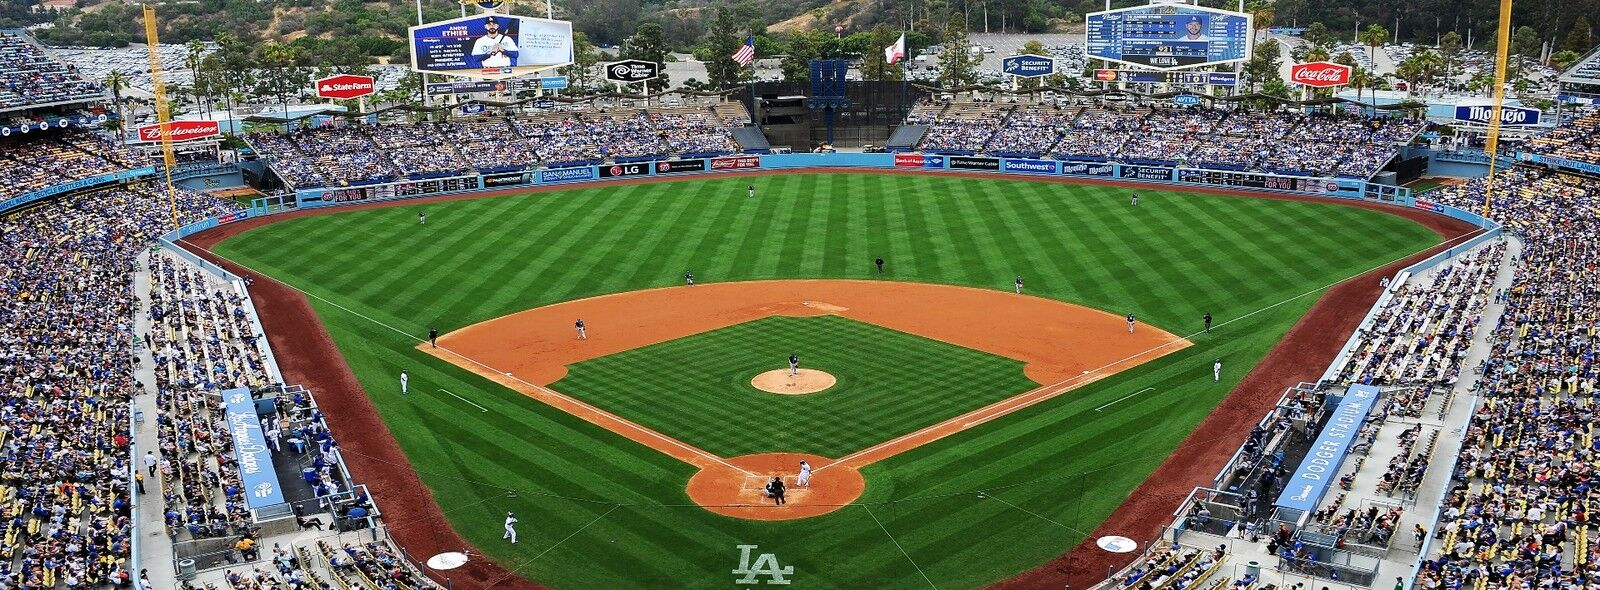 Arizona Diamondbacks at Los Angeles Dodgers Tickets (Labor Day BBQ Gloves)